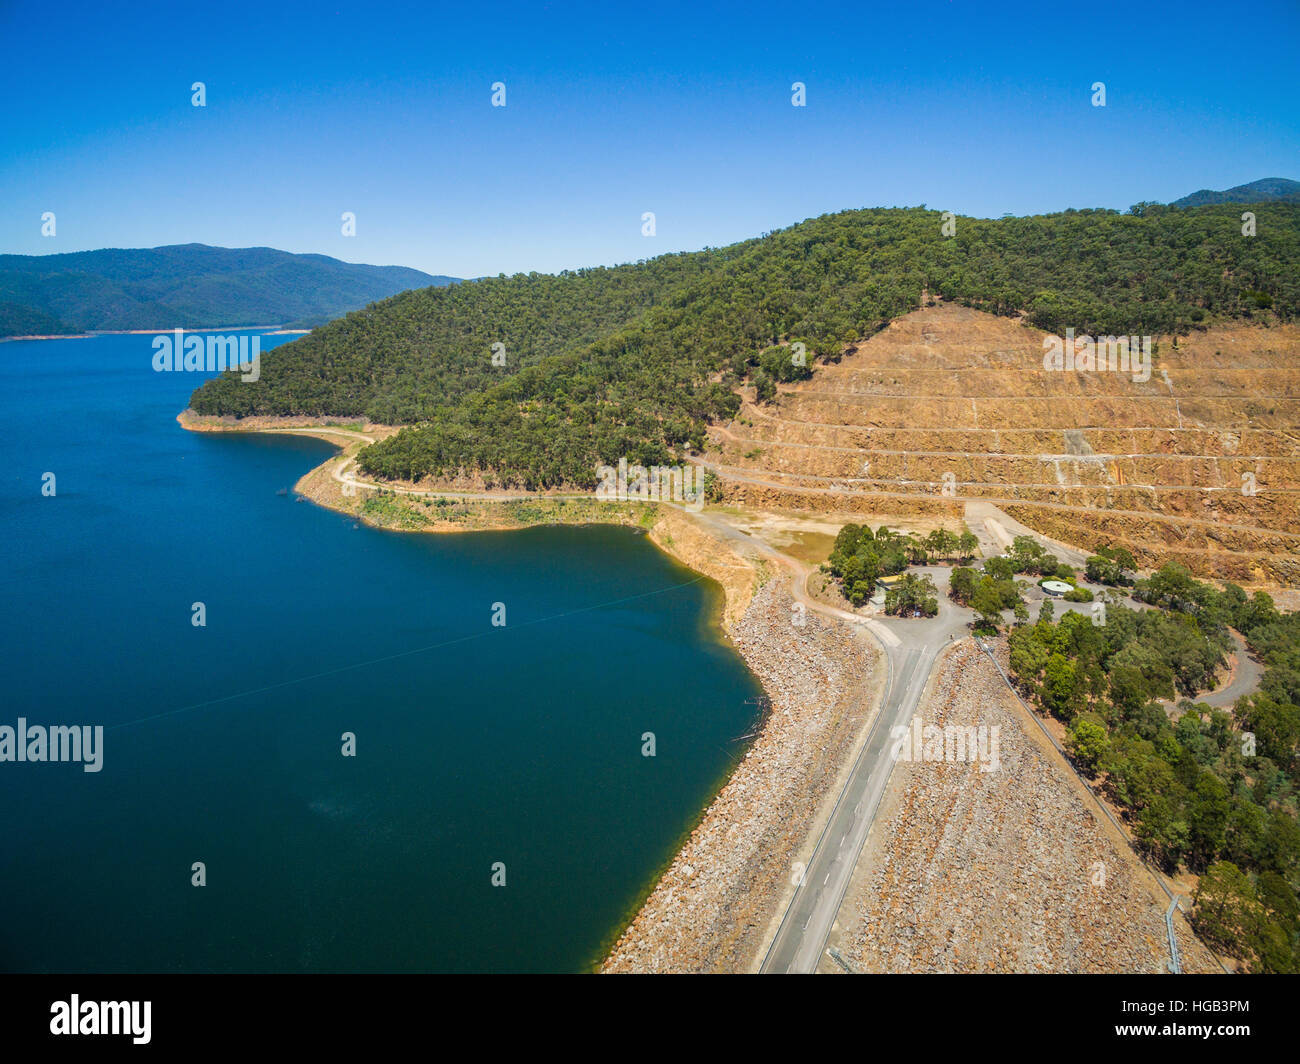 Aerial view of Dartmouth dam - the highest dam in Australia on hot summer day - Stock Image